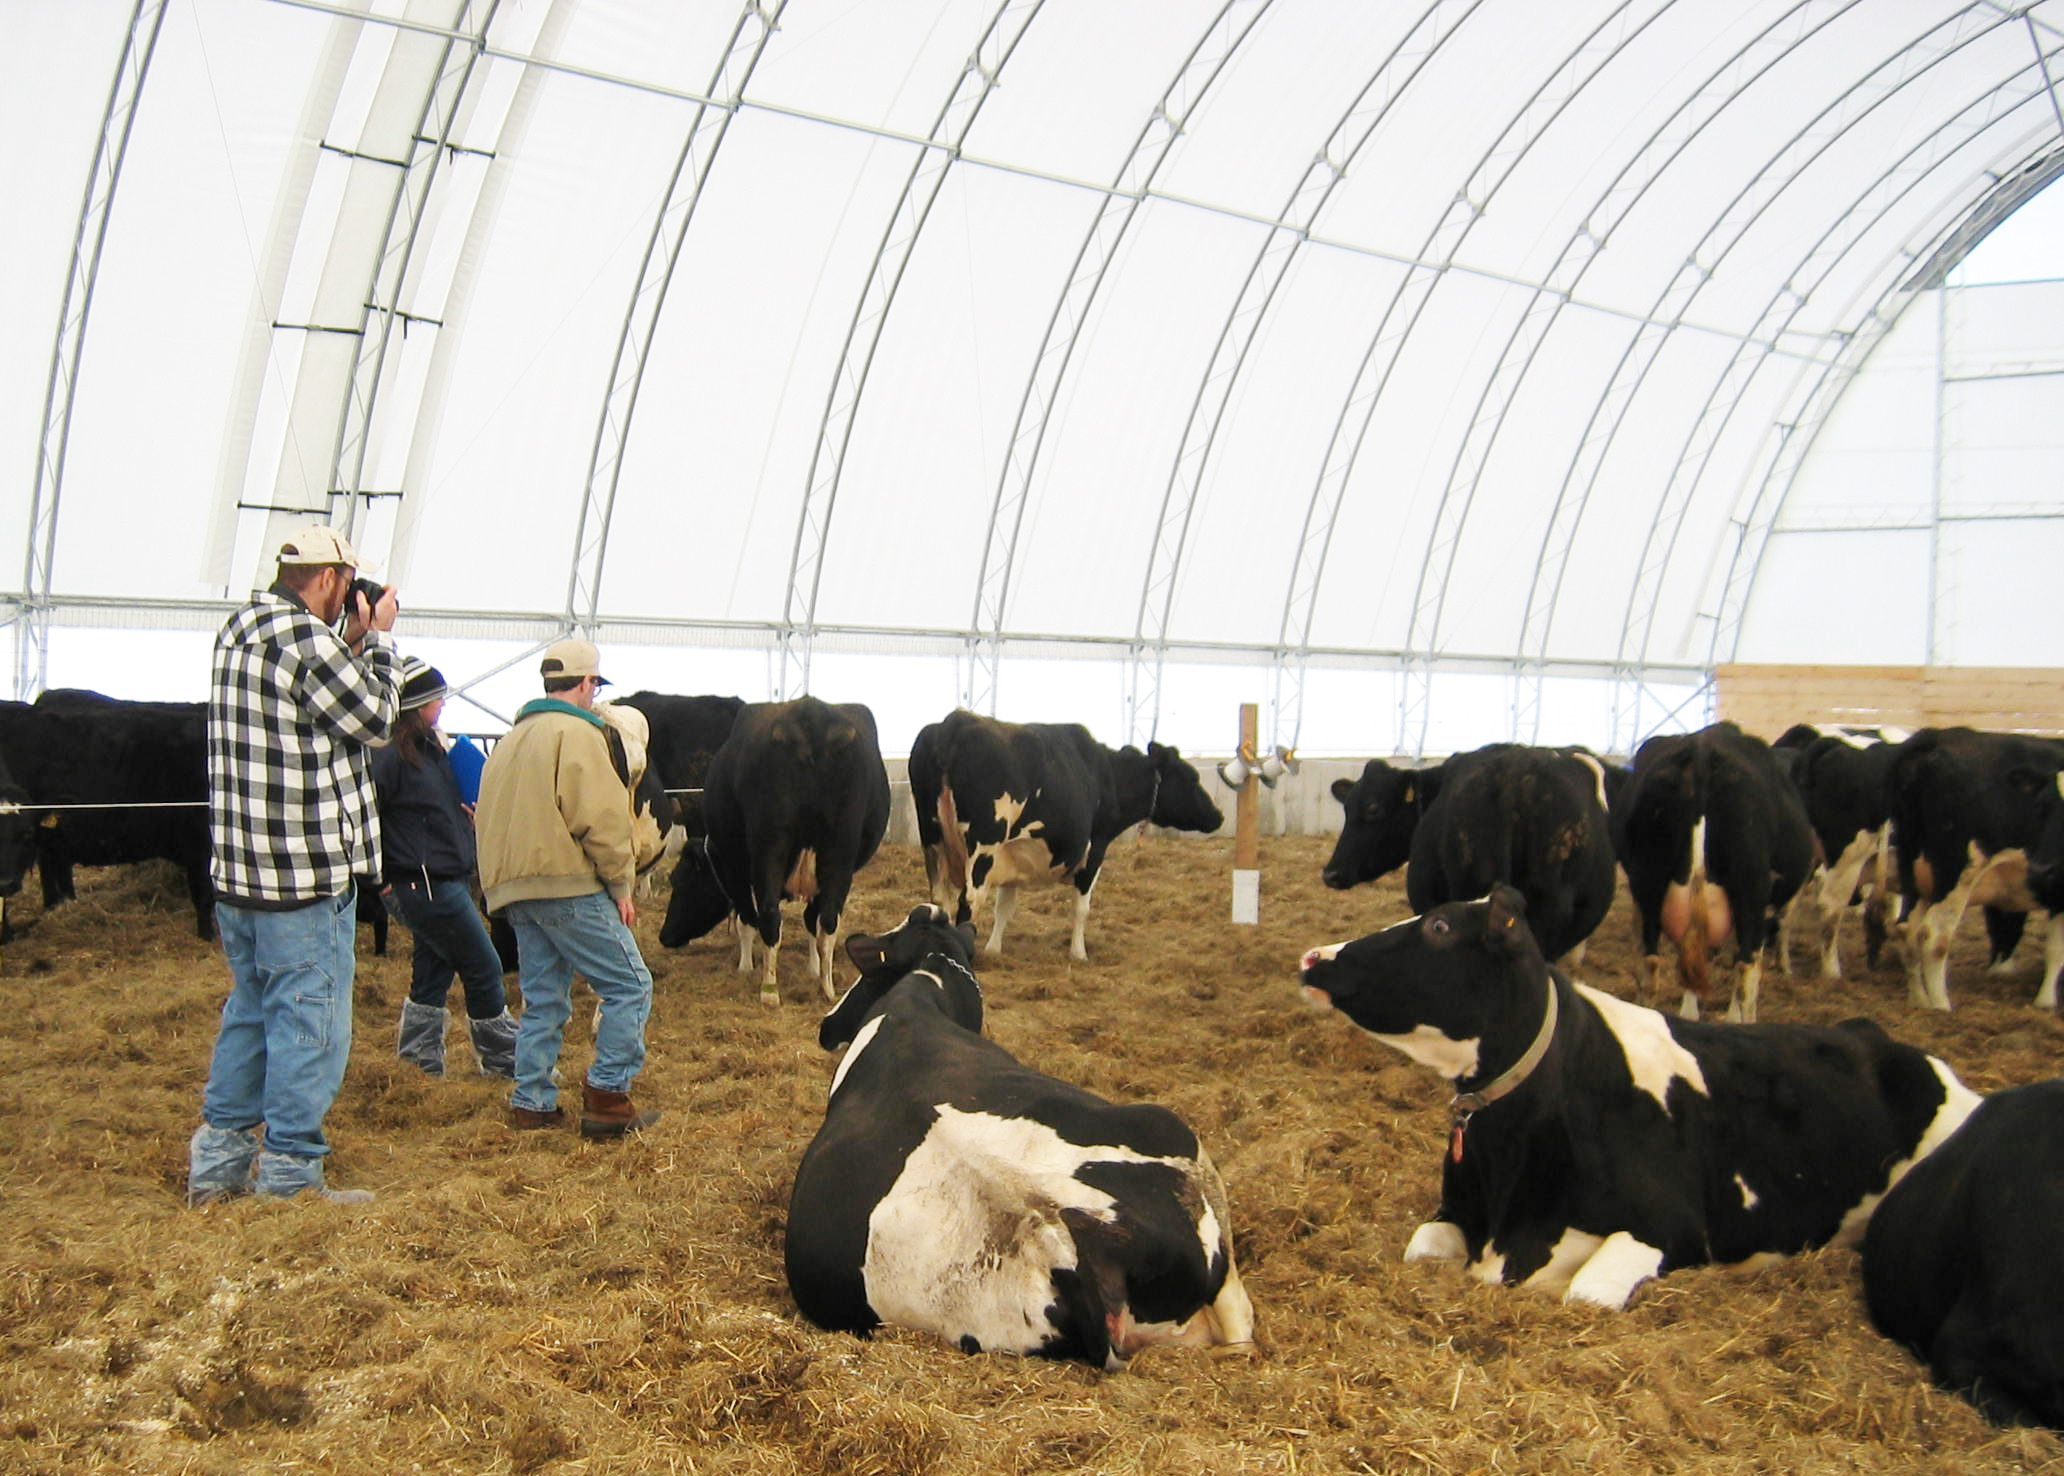 consider deep pack barns for cow comfort and manure management